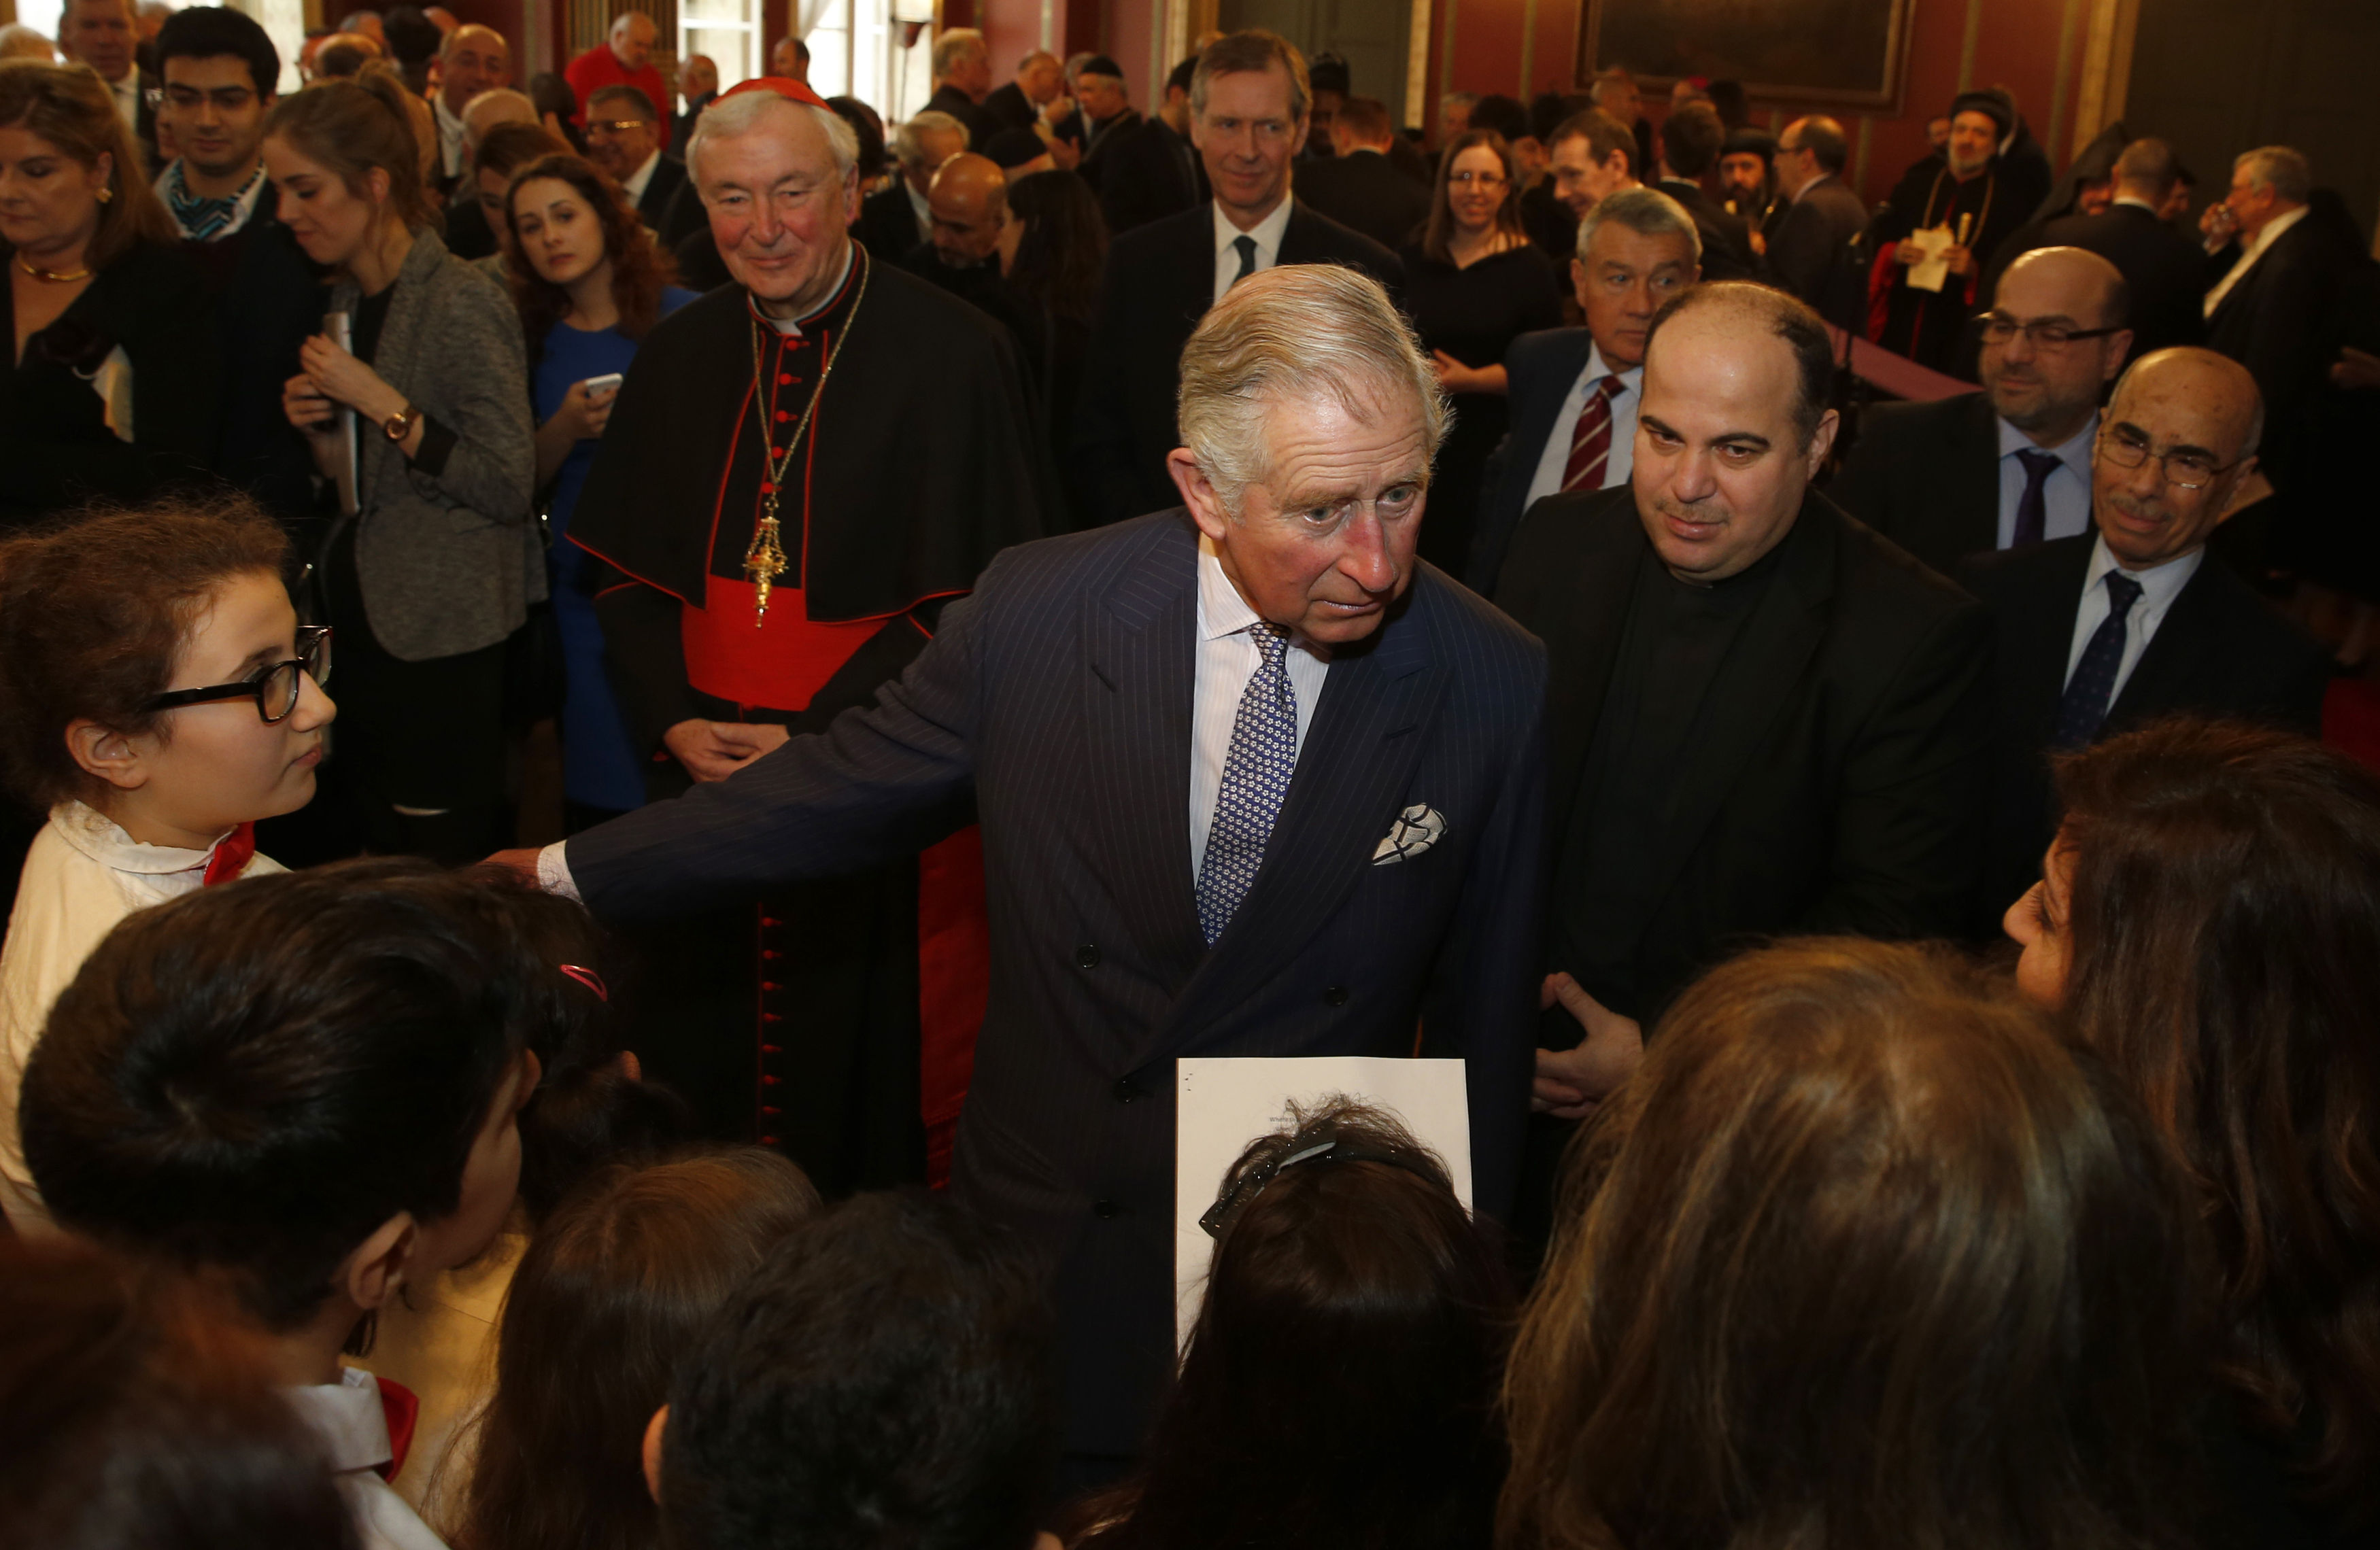 An Easter message from HRH Prince Charles